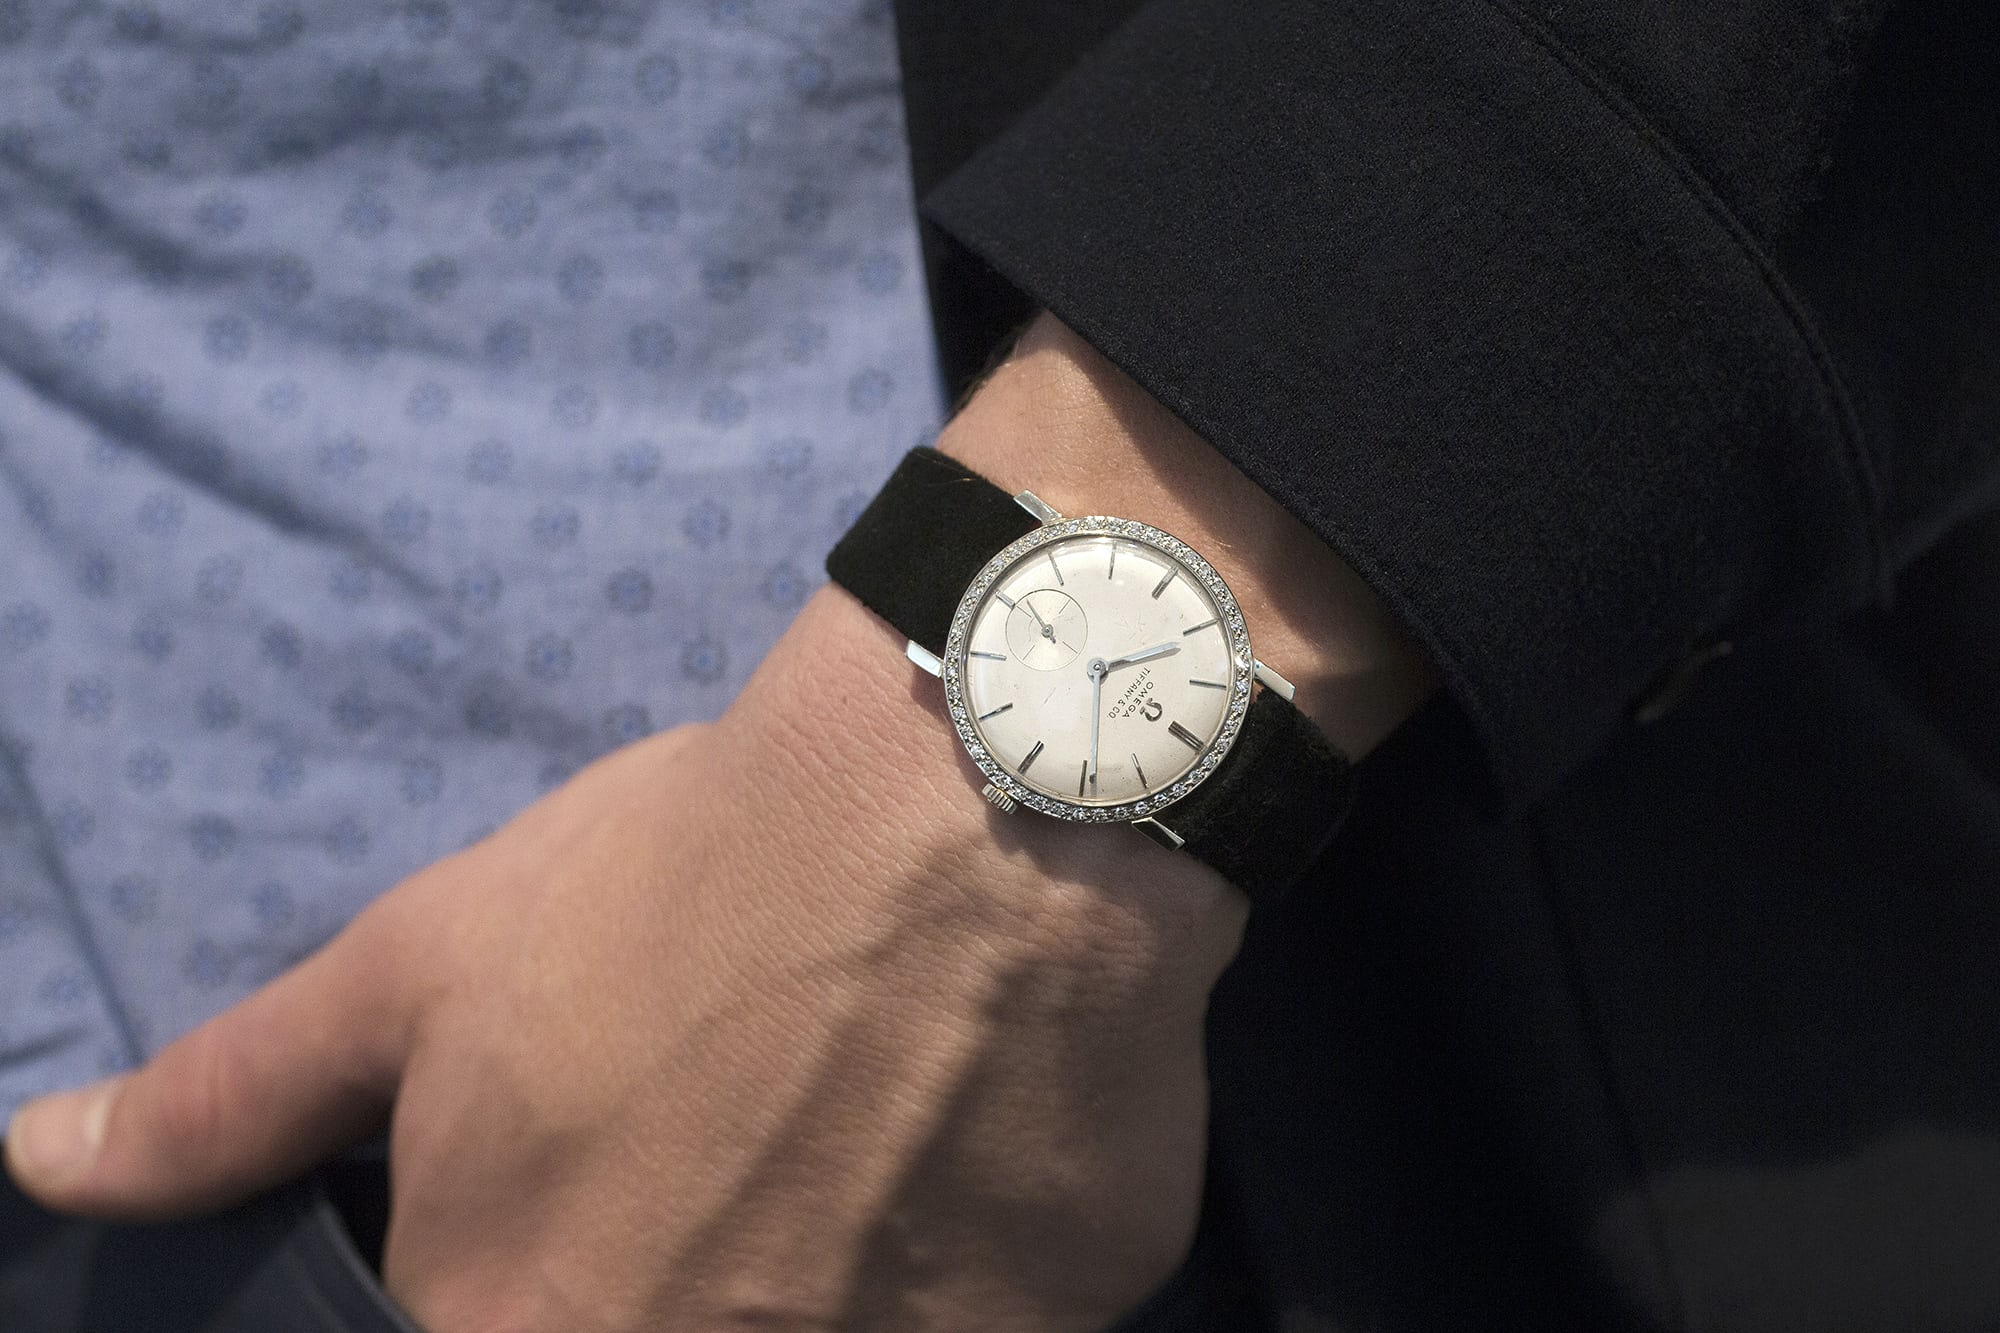 breaking news: elvis presley's tiffany-dial omega sells for $1.8 million, becoming most expensive omega Breaking News: Elvis Presley's Tiffany-Dial Omega Sells For $1.8 Million, Becoming Most Expensive Omega 20015319